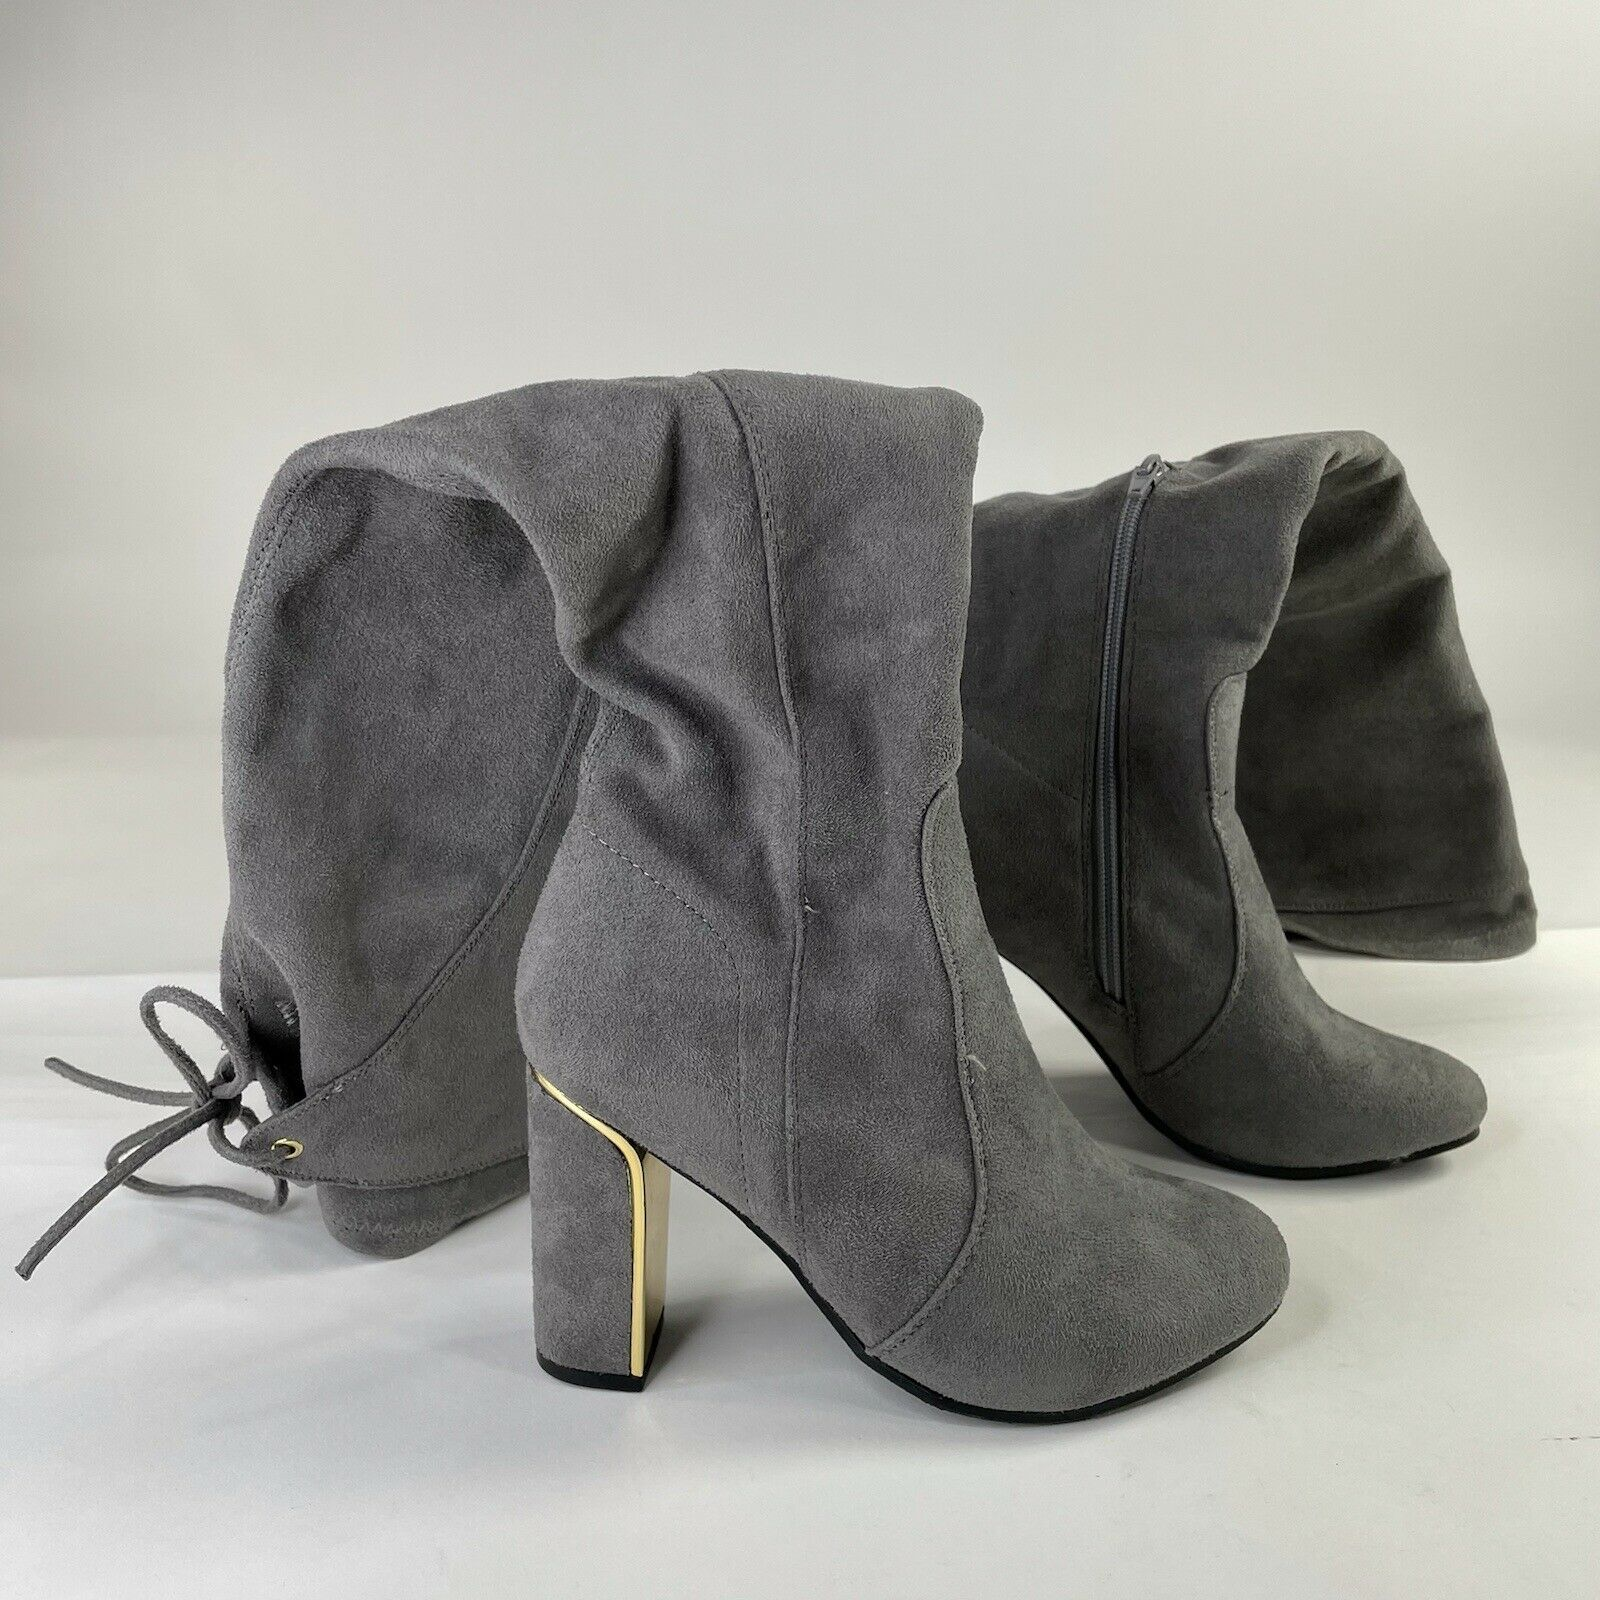 Knee High Boots 5.5 Grey Womens Casual Heels Basic Plain Going Out Side Zip Used